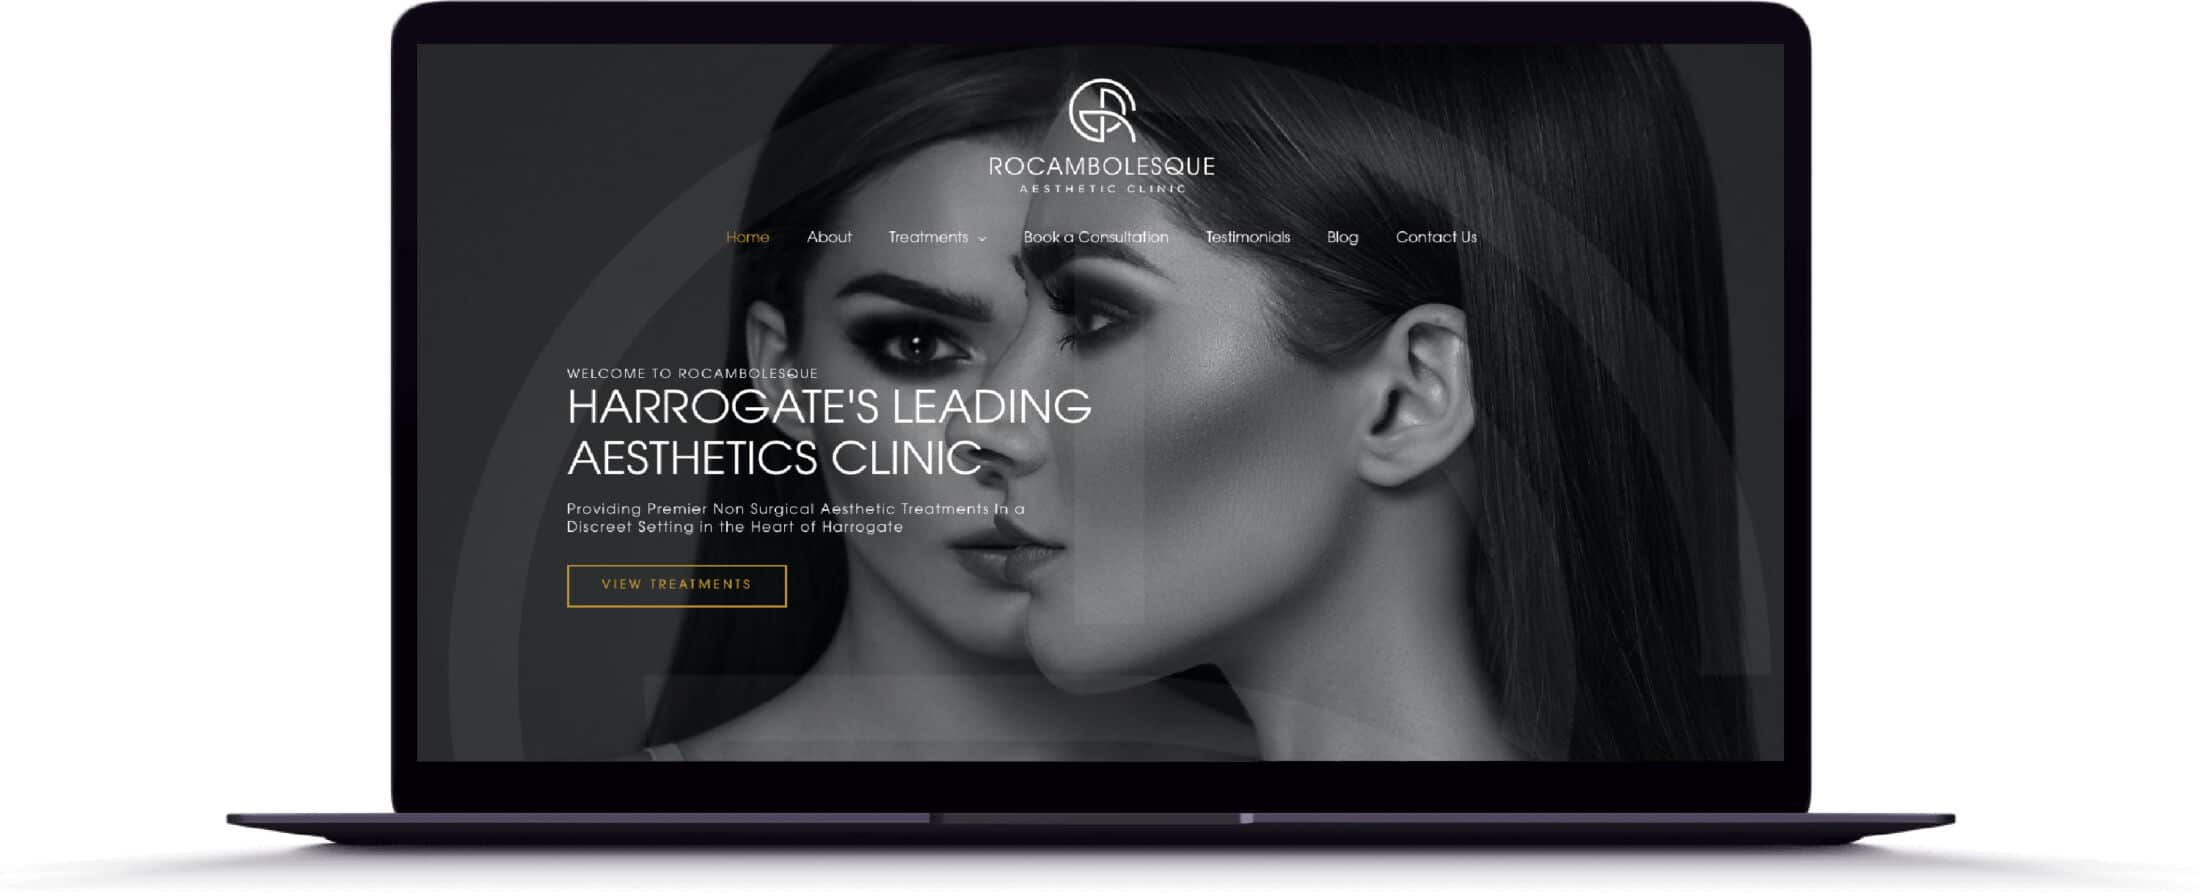 Rocambolesque, Harrogate, UK Website Design